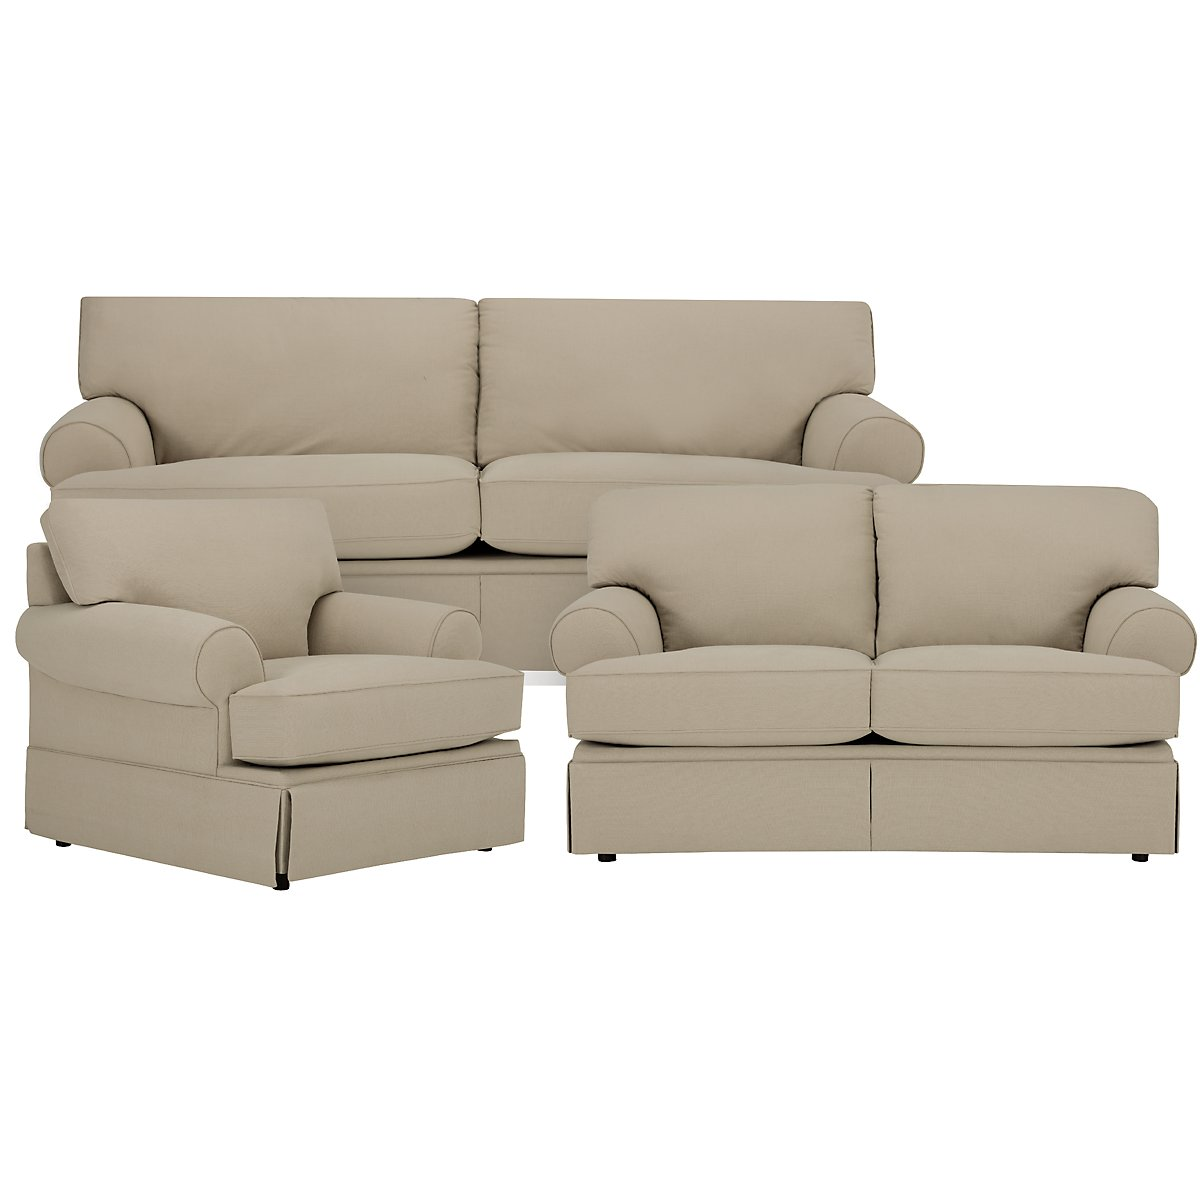 Kylie Dark Taupe Cotton Living Room